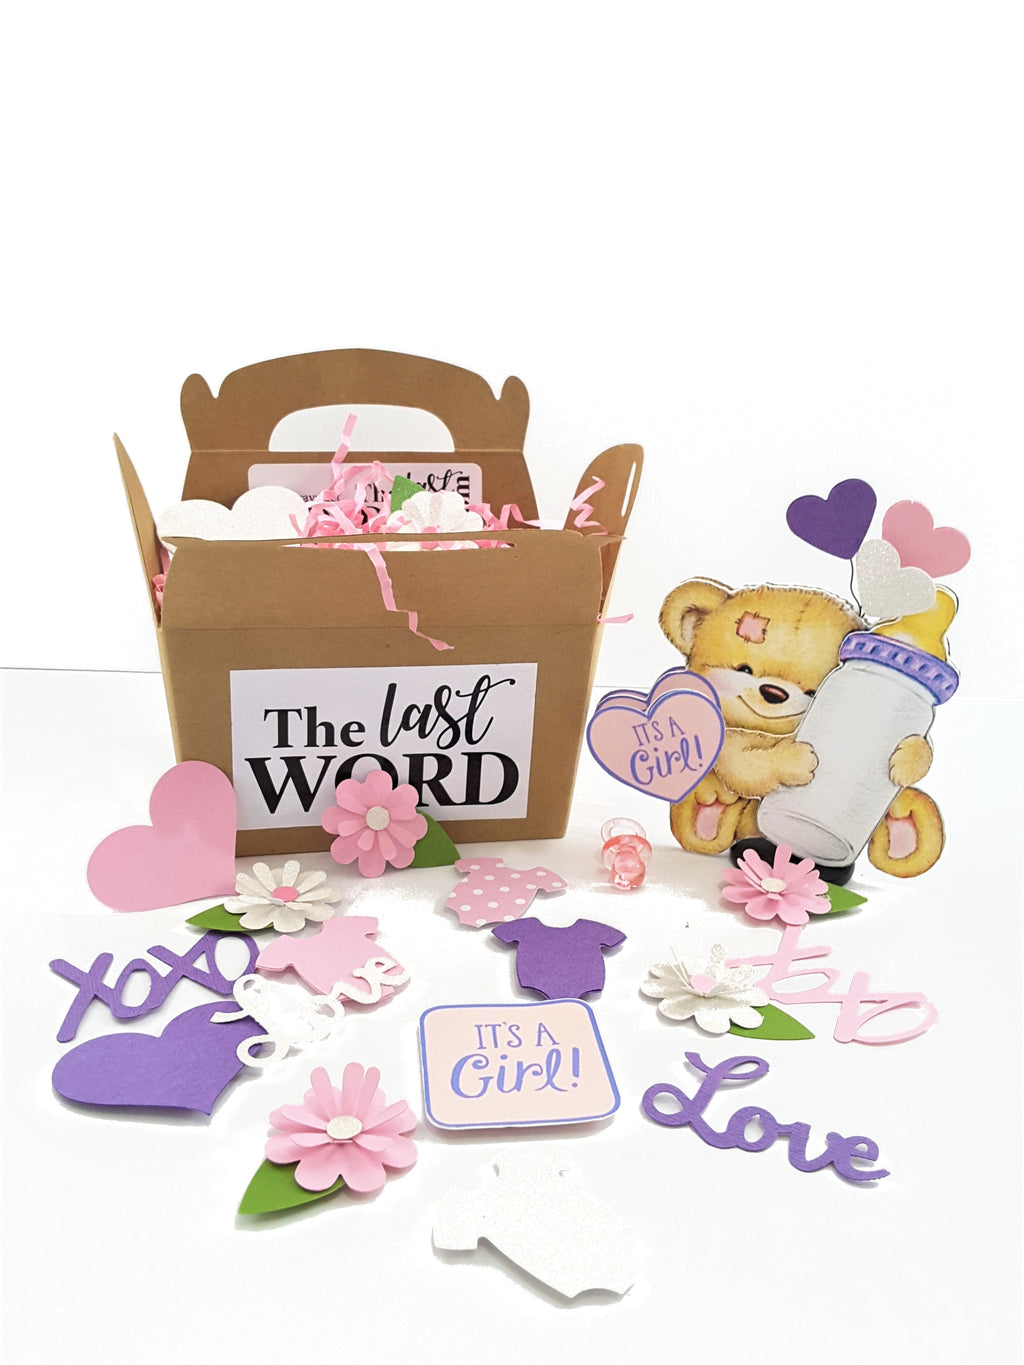 BABY GIRL CONGRATULATIONS OR BIRTH ANNOUNCEMENT 3D GREETING CARD GIFT